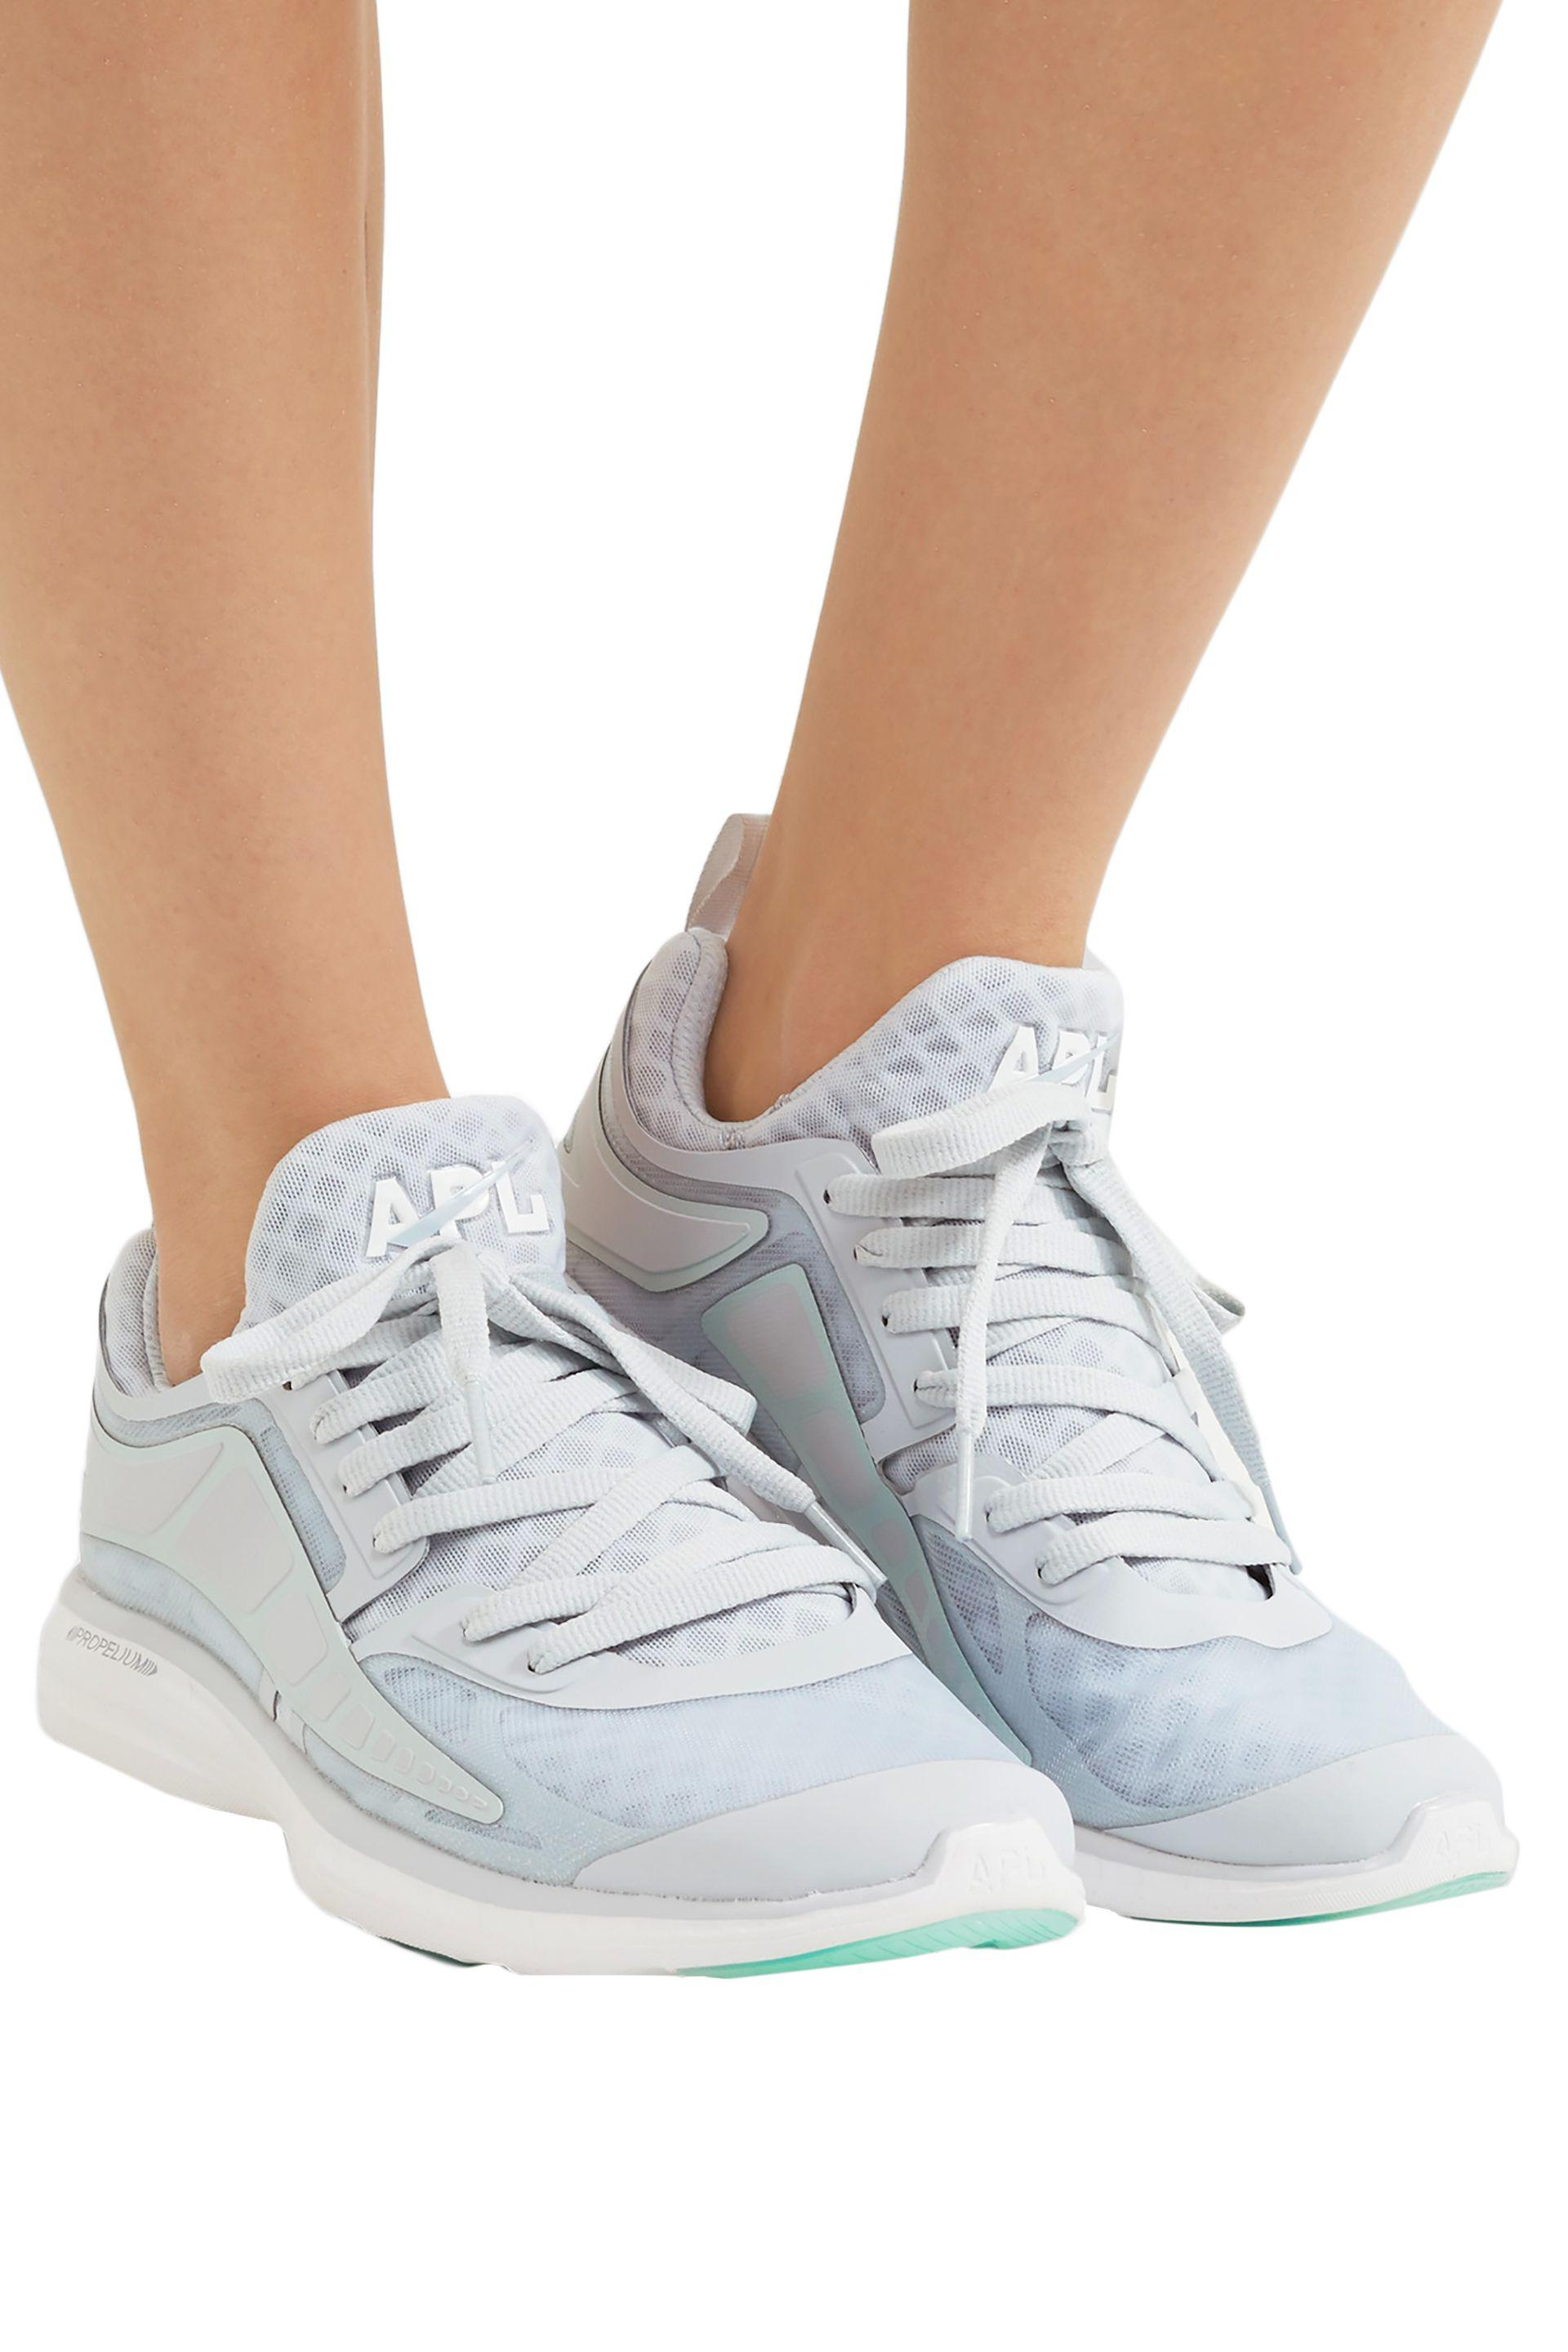 APL Shoes Prism Mesh Sneakers Light Gray